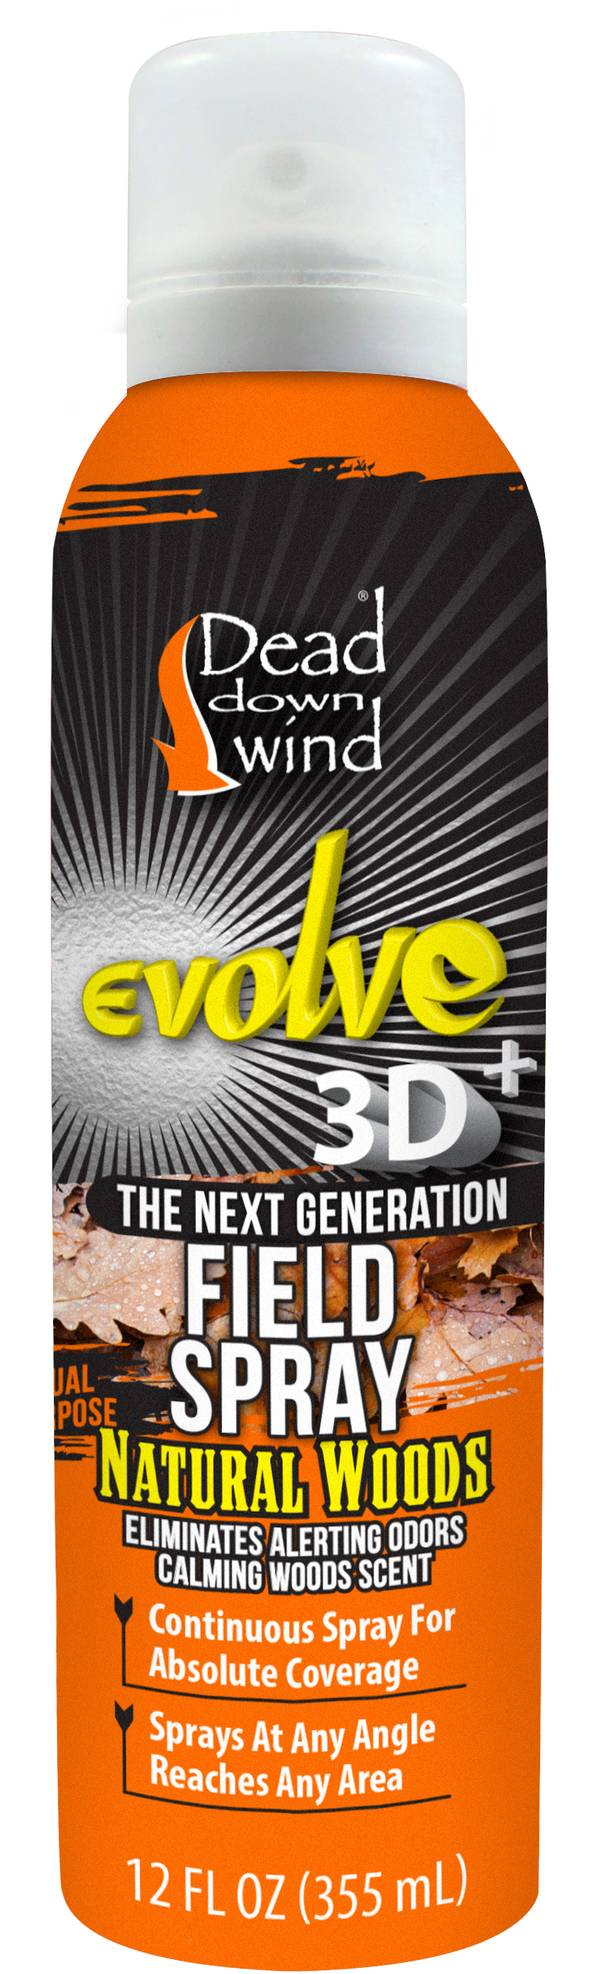 Dead Down Wind Evolve 3D Field Spray Continuous Spray product image